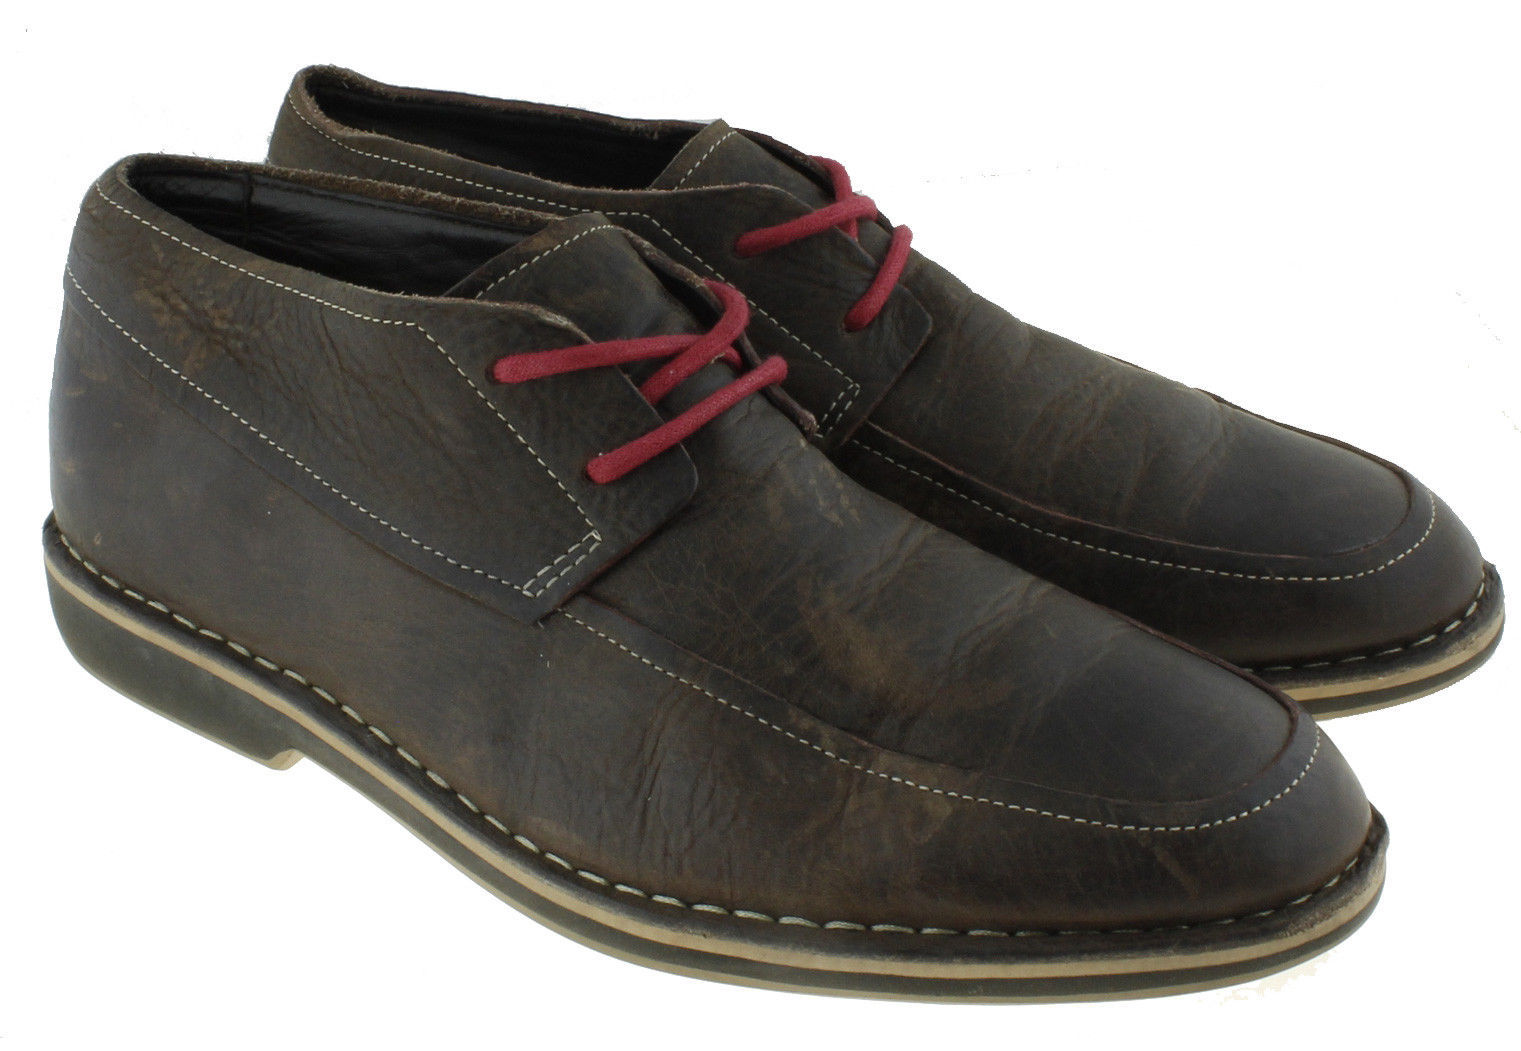 9dd5df88453 Cole Haan Mens Oxford Shoes Dark Brown Leather Size 11 Plain Toe Casual  Lace Up